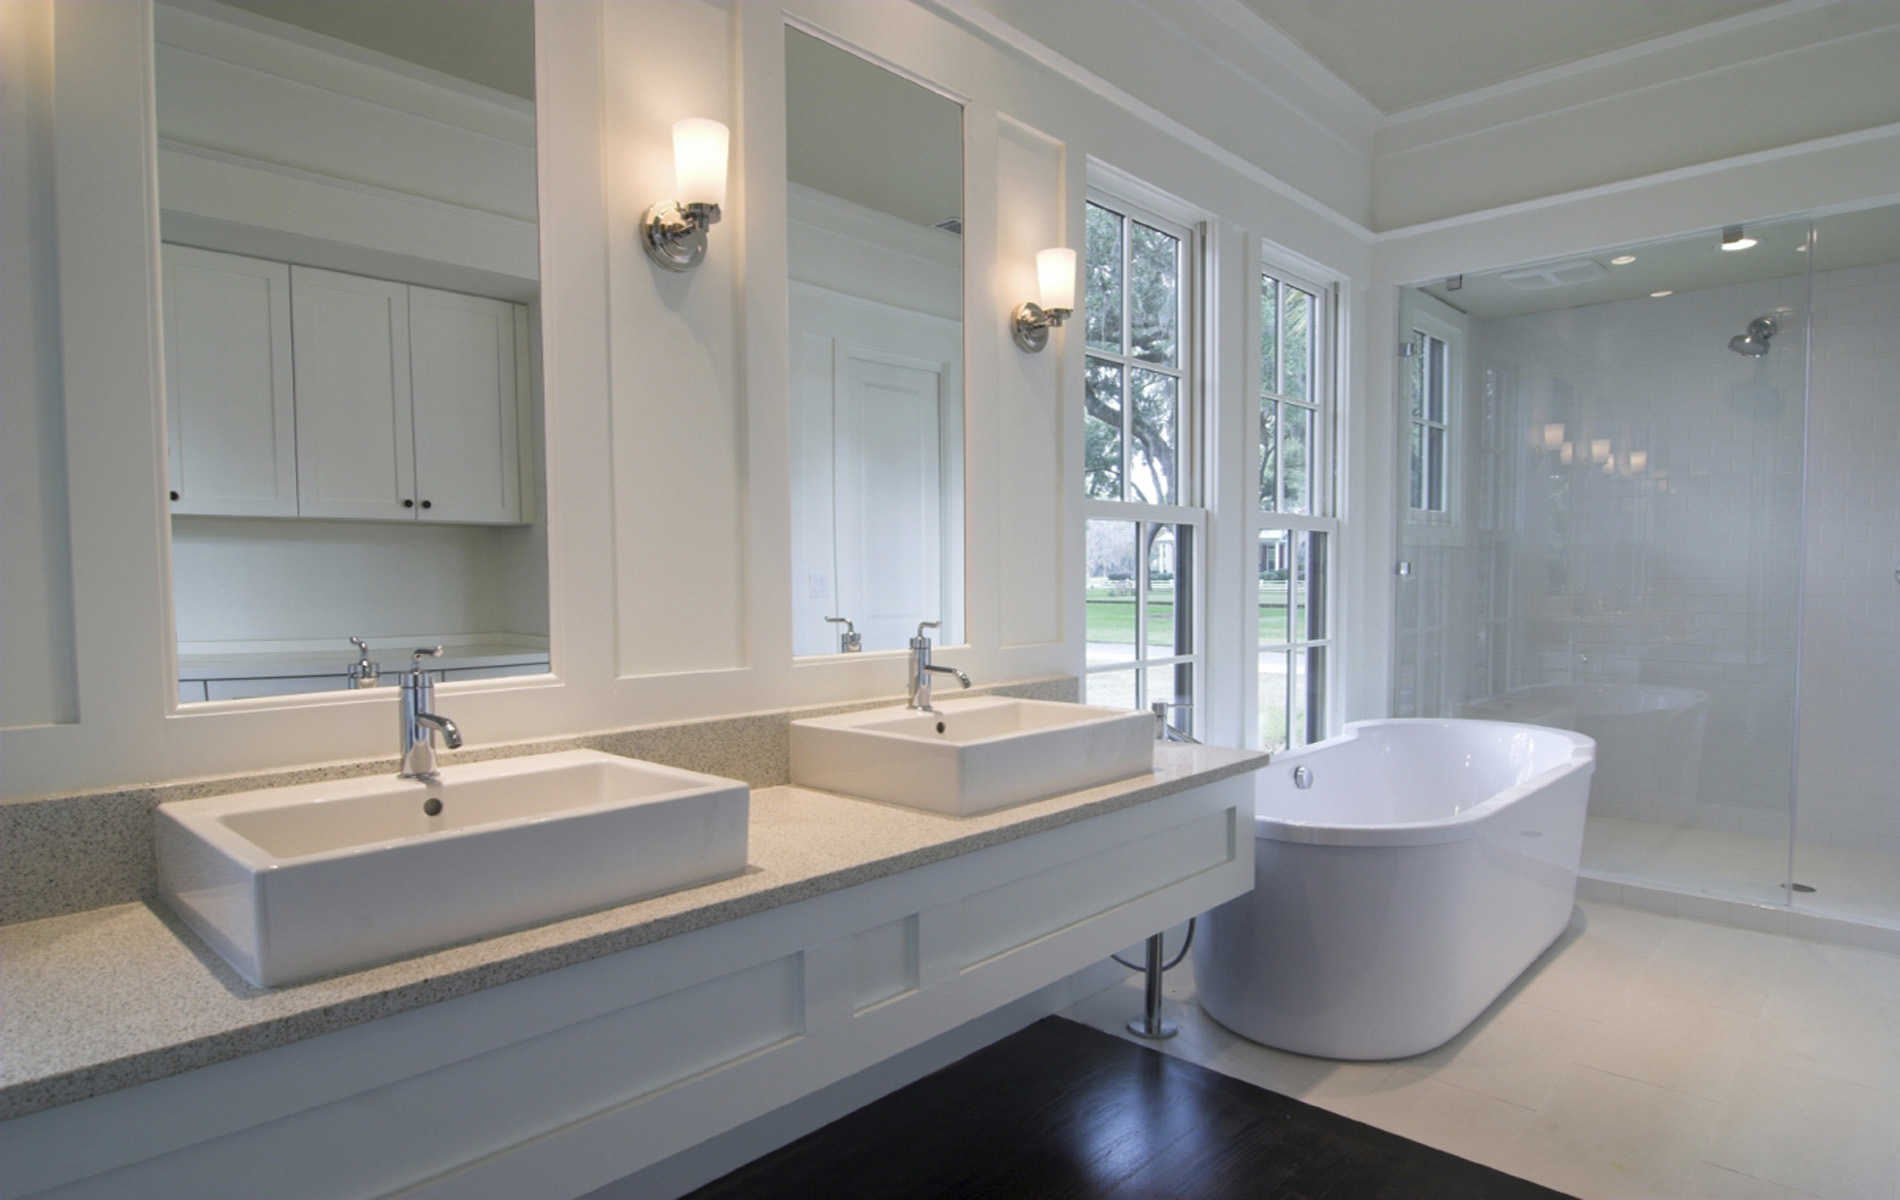 Services - Kitchen & Bathroom Remodeling By KCB Contractors Inc.